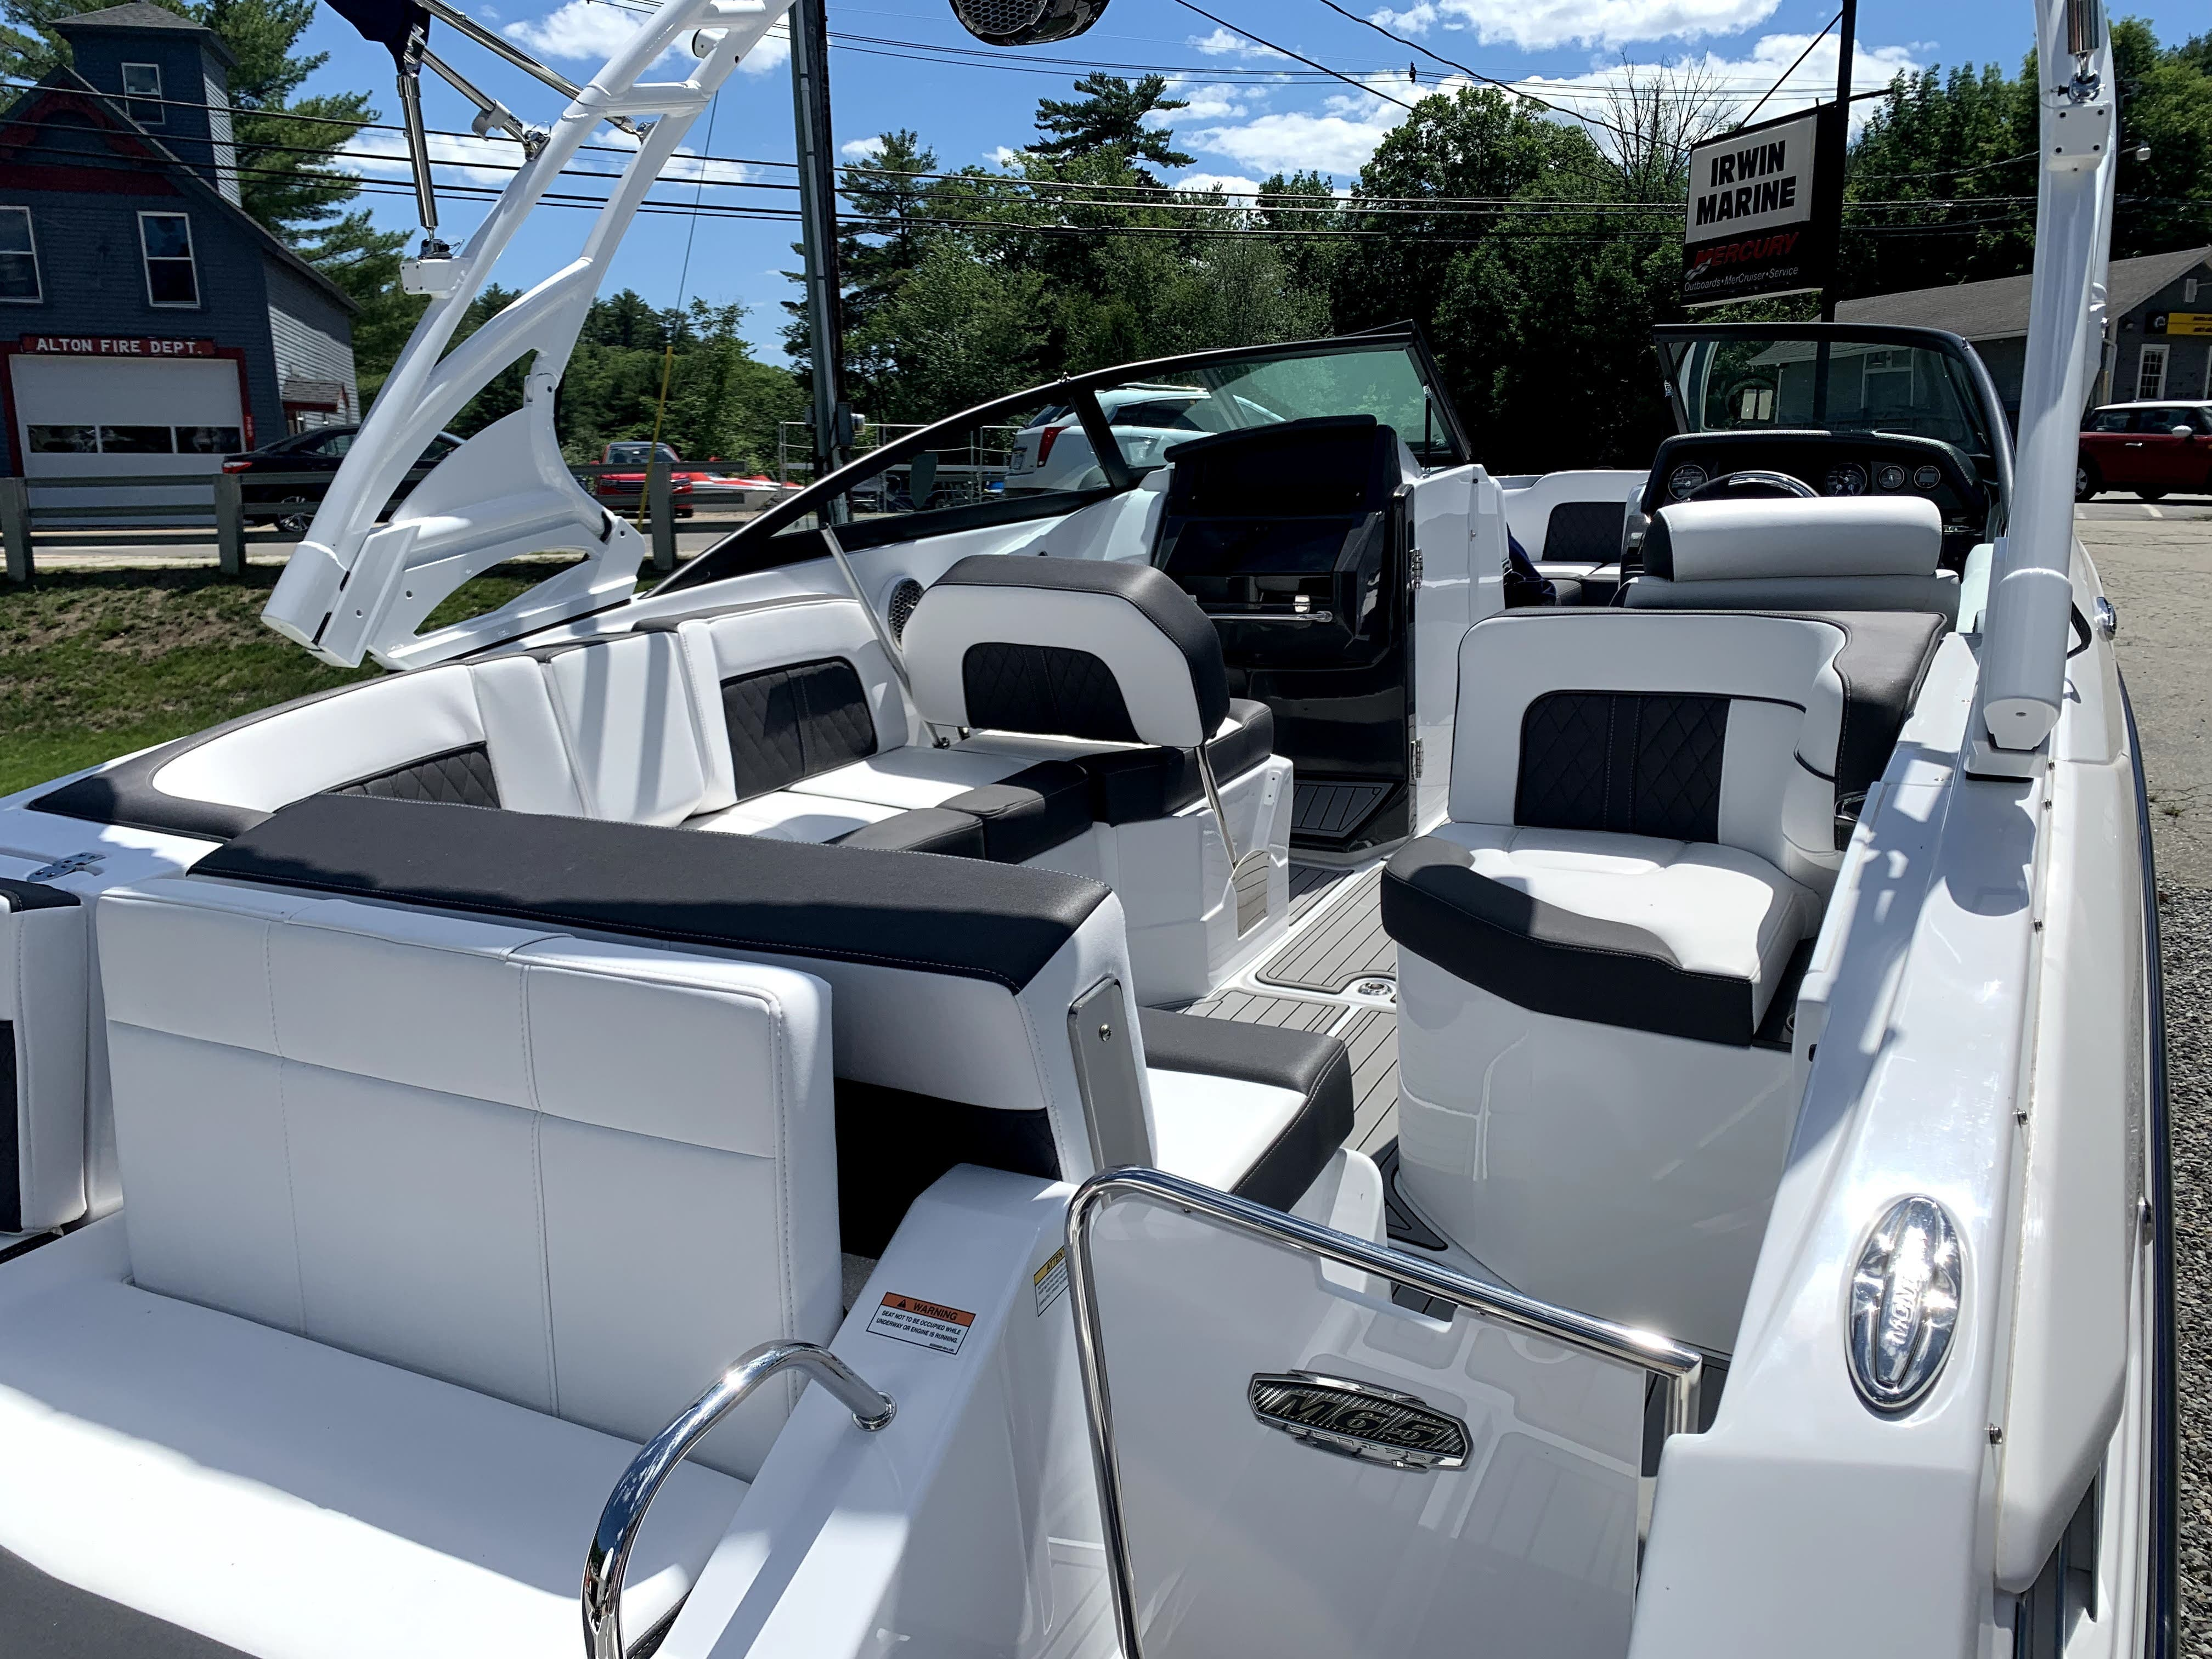 2021 Monterey boat for sale, model of the boat is M65 & Image # 4 of 12